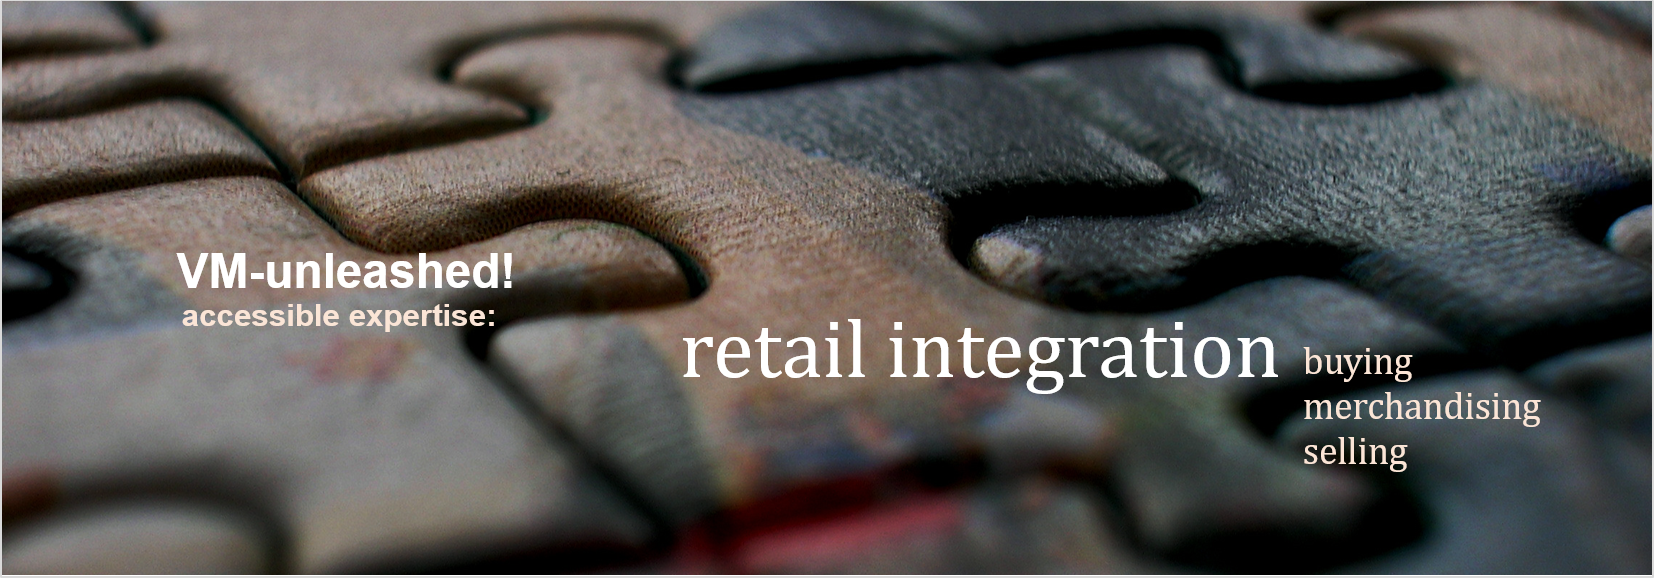 vm-unleashed-accessible expertise-retail-integration-operations-buying-merchandising-selling